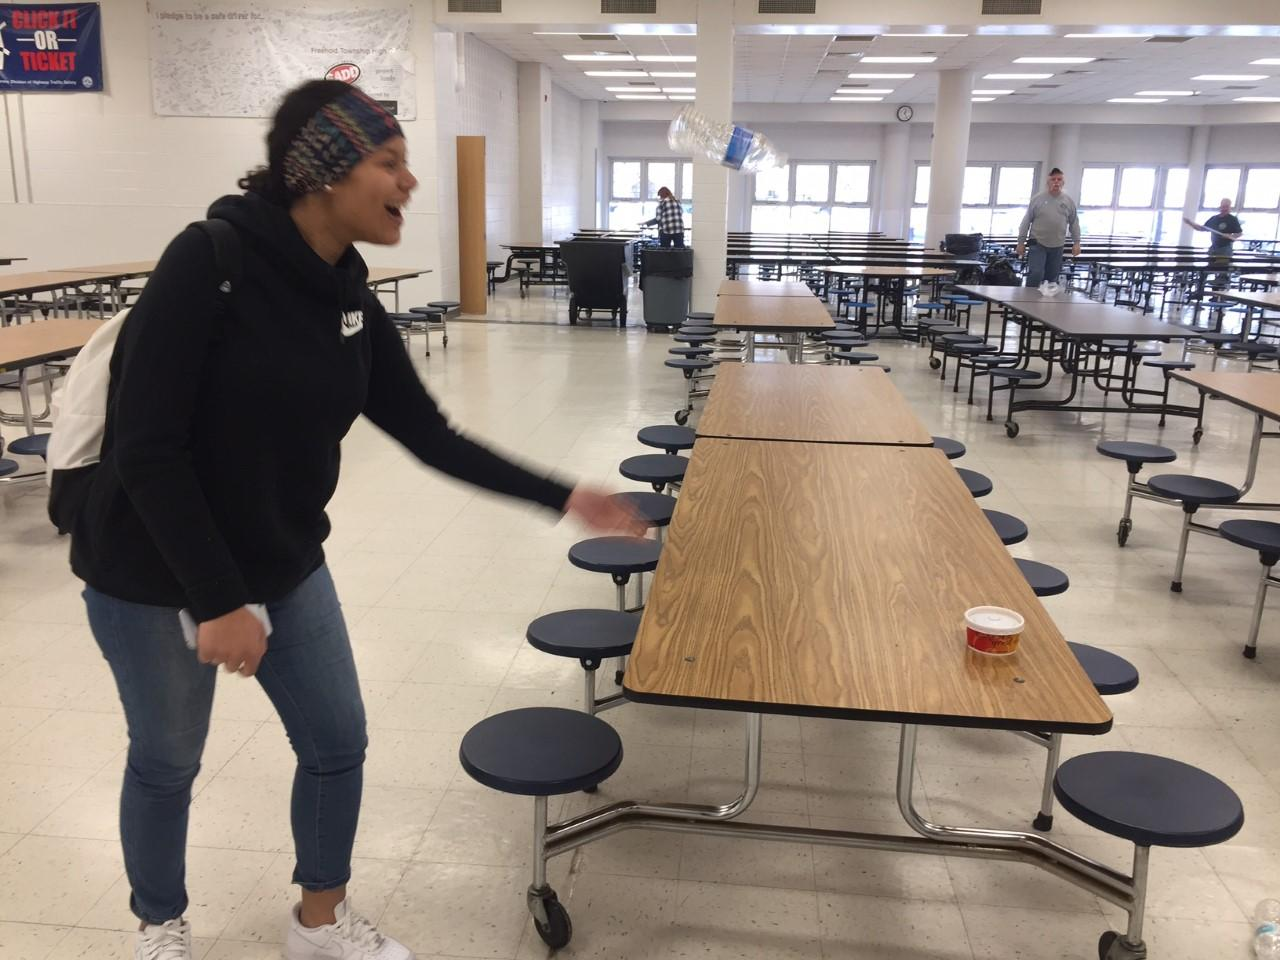 Senior Cihara Coleman demonstrates her bottle-flipping skills in the cafeteria